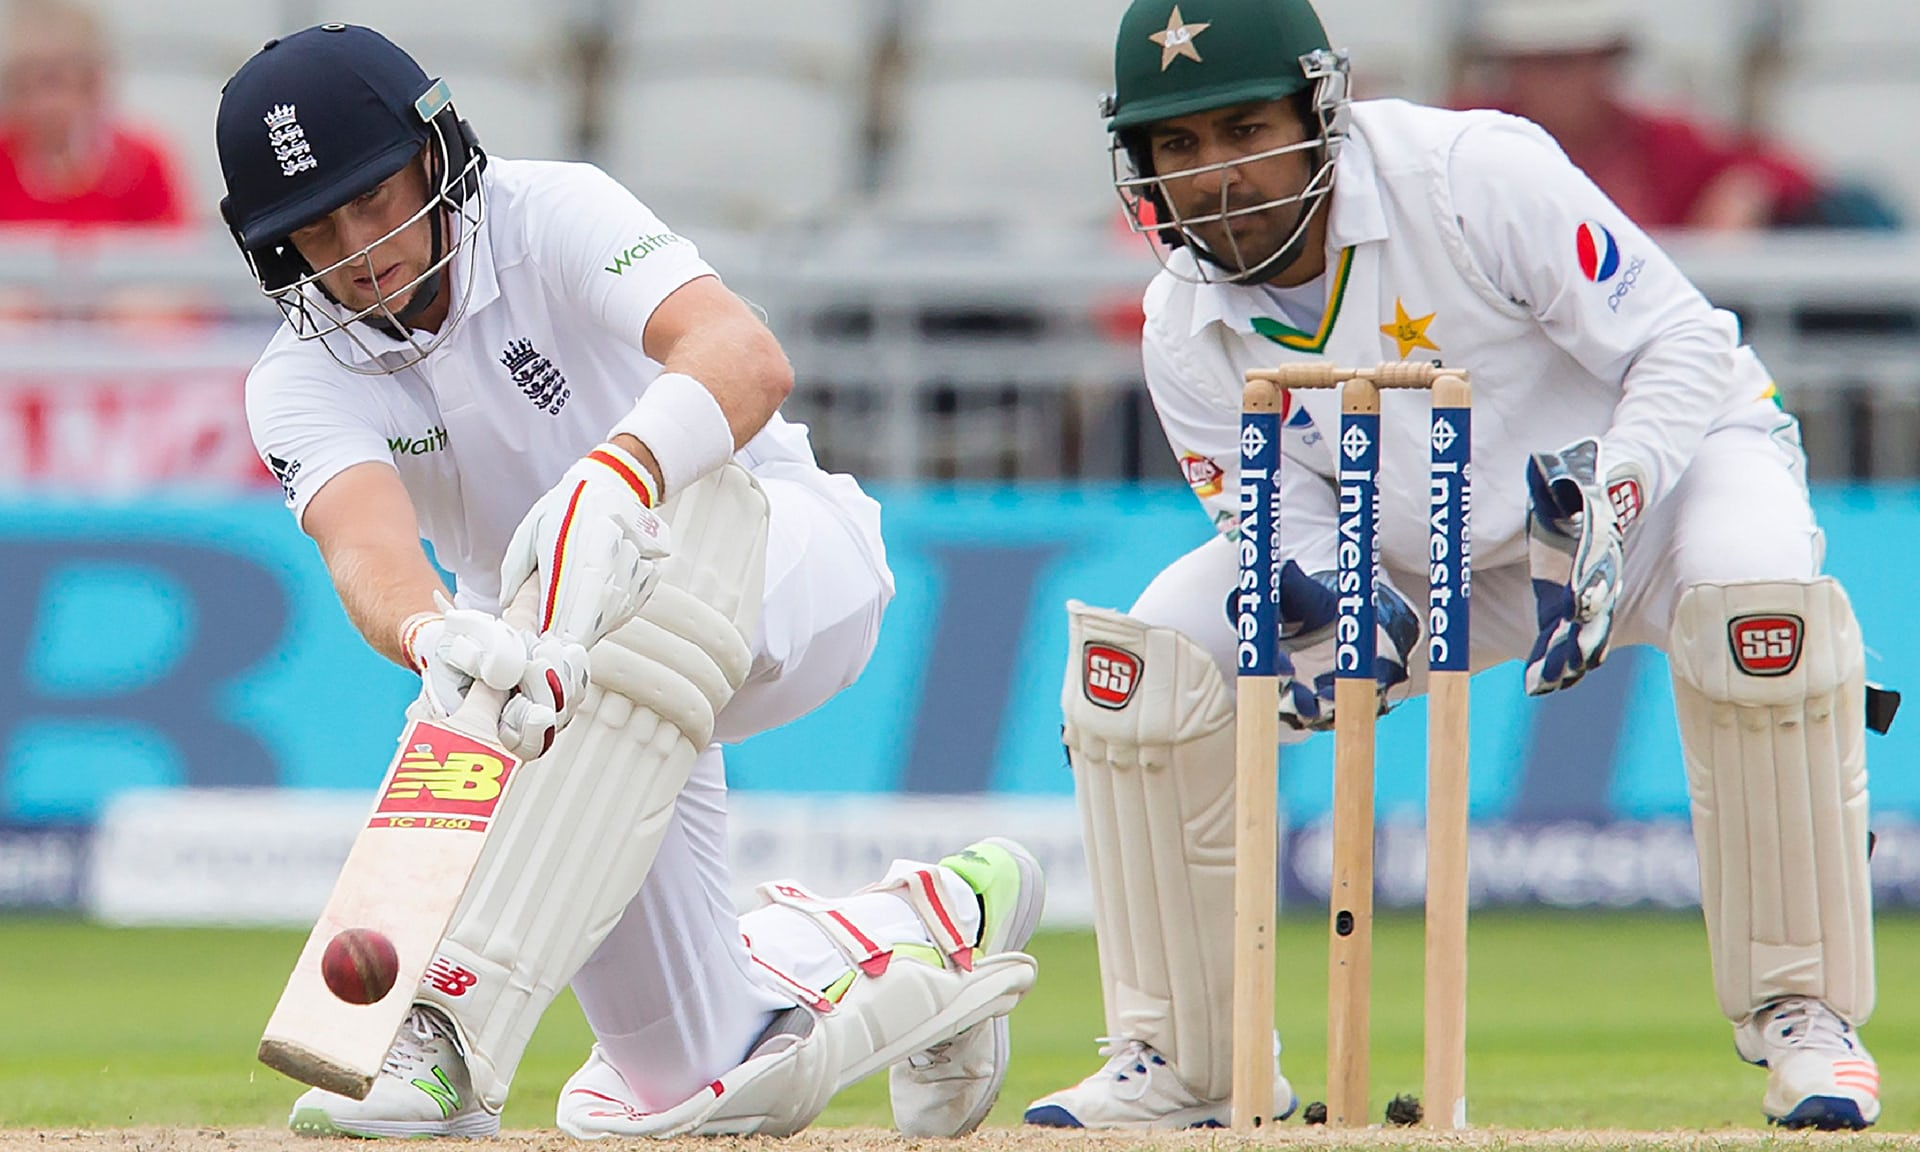 Challenging the squad: Root has urged England to continue seeking improvement. PHOTO: AFP